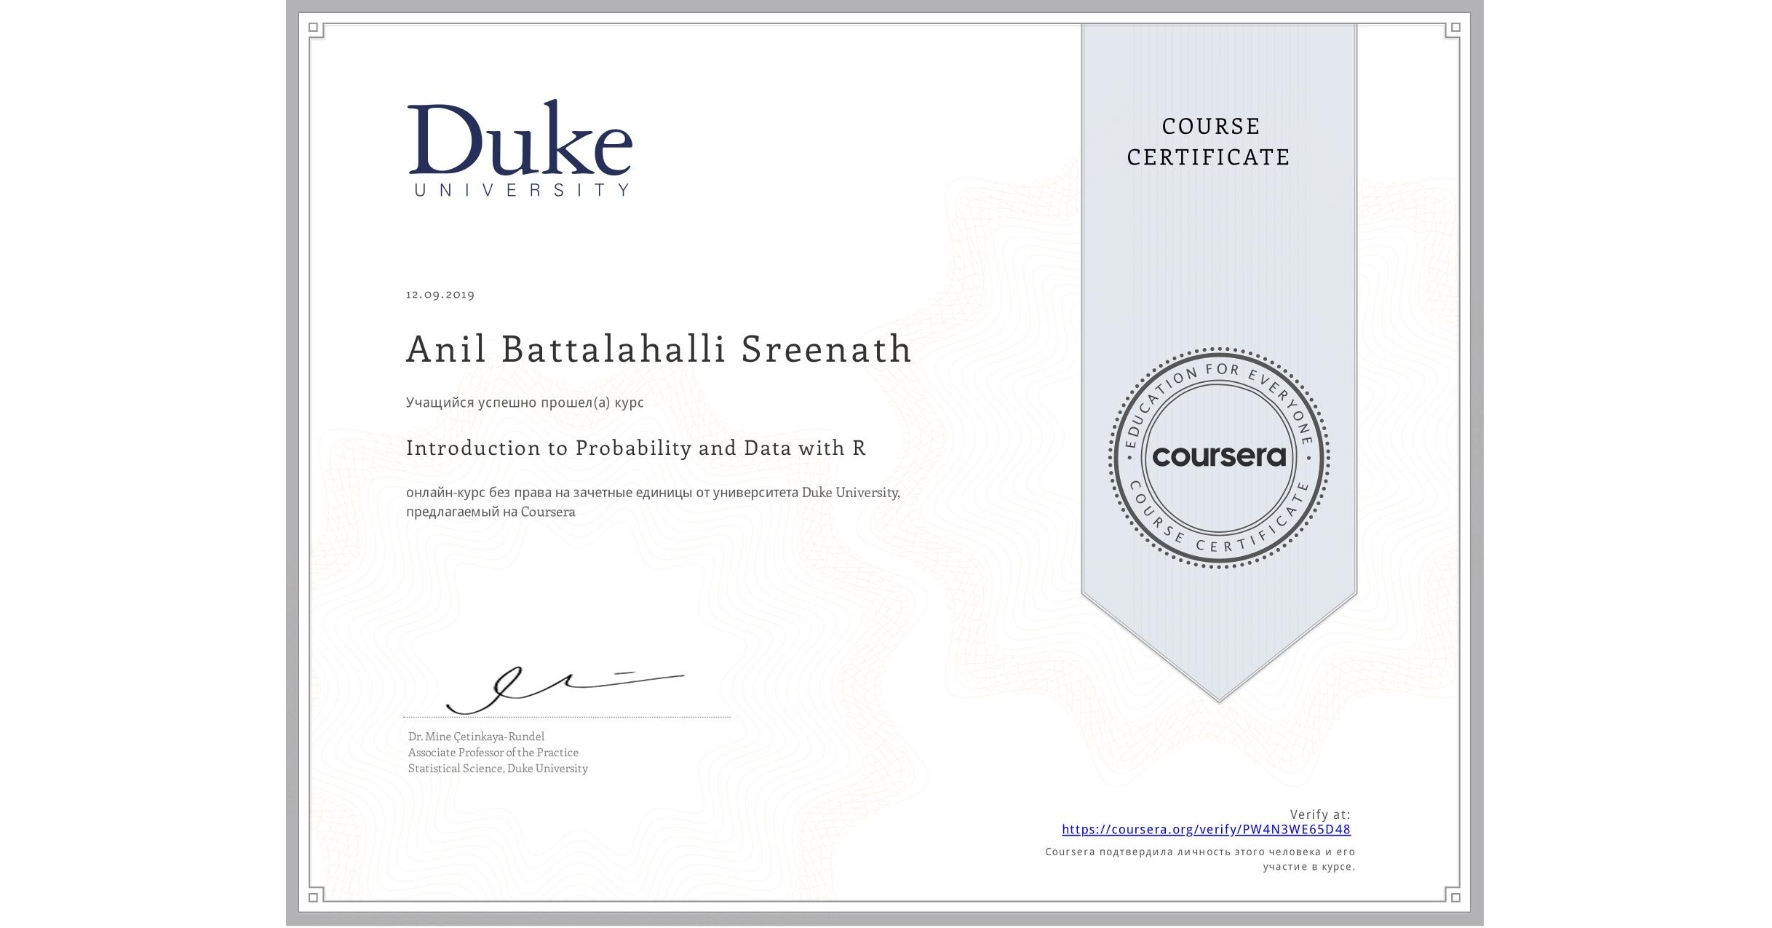 View certificate for Anil Battalahalli Sreenath, Introduction to Probability and Data with R, an online non-credit course authorized by Duke University and offered through Coursera